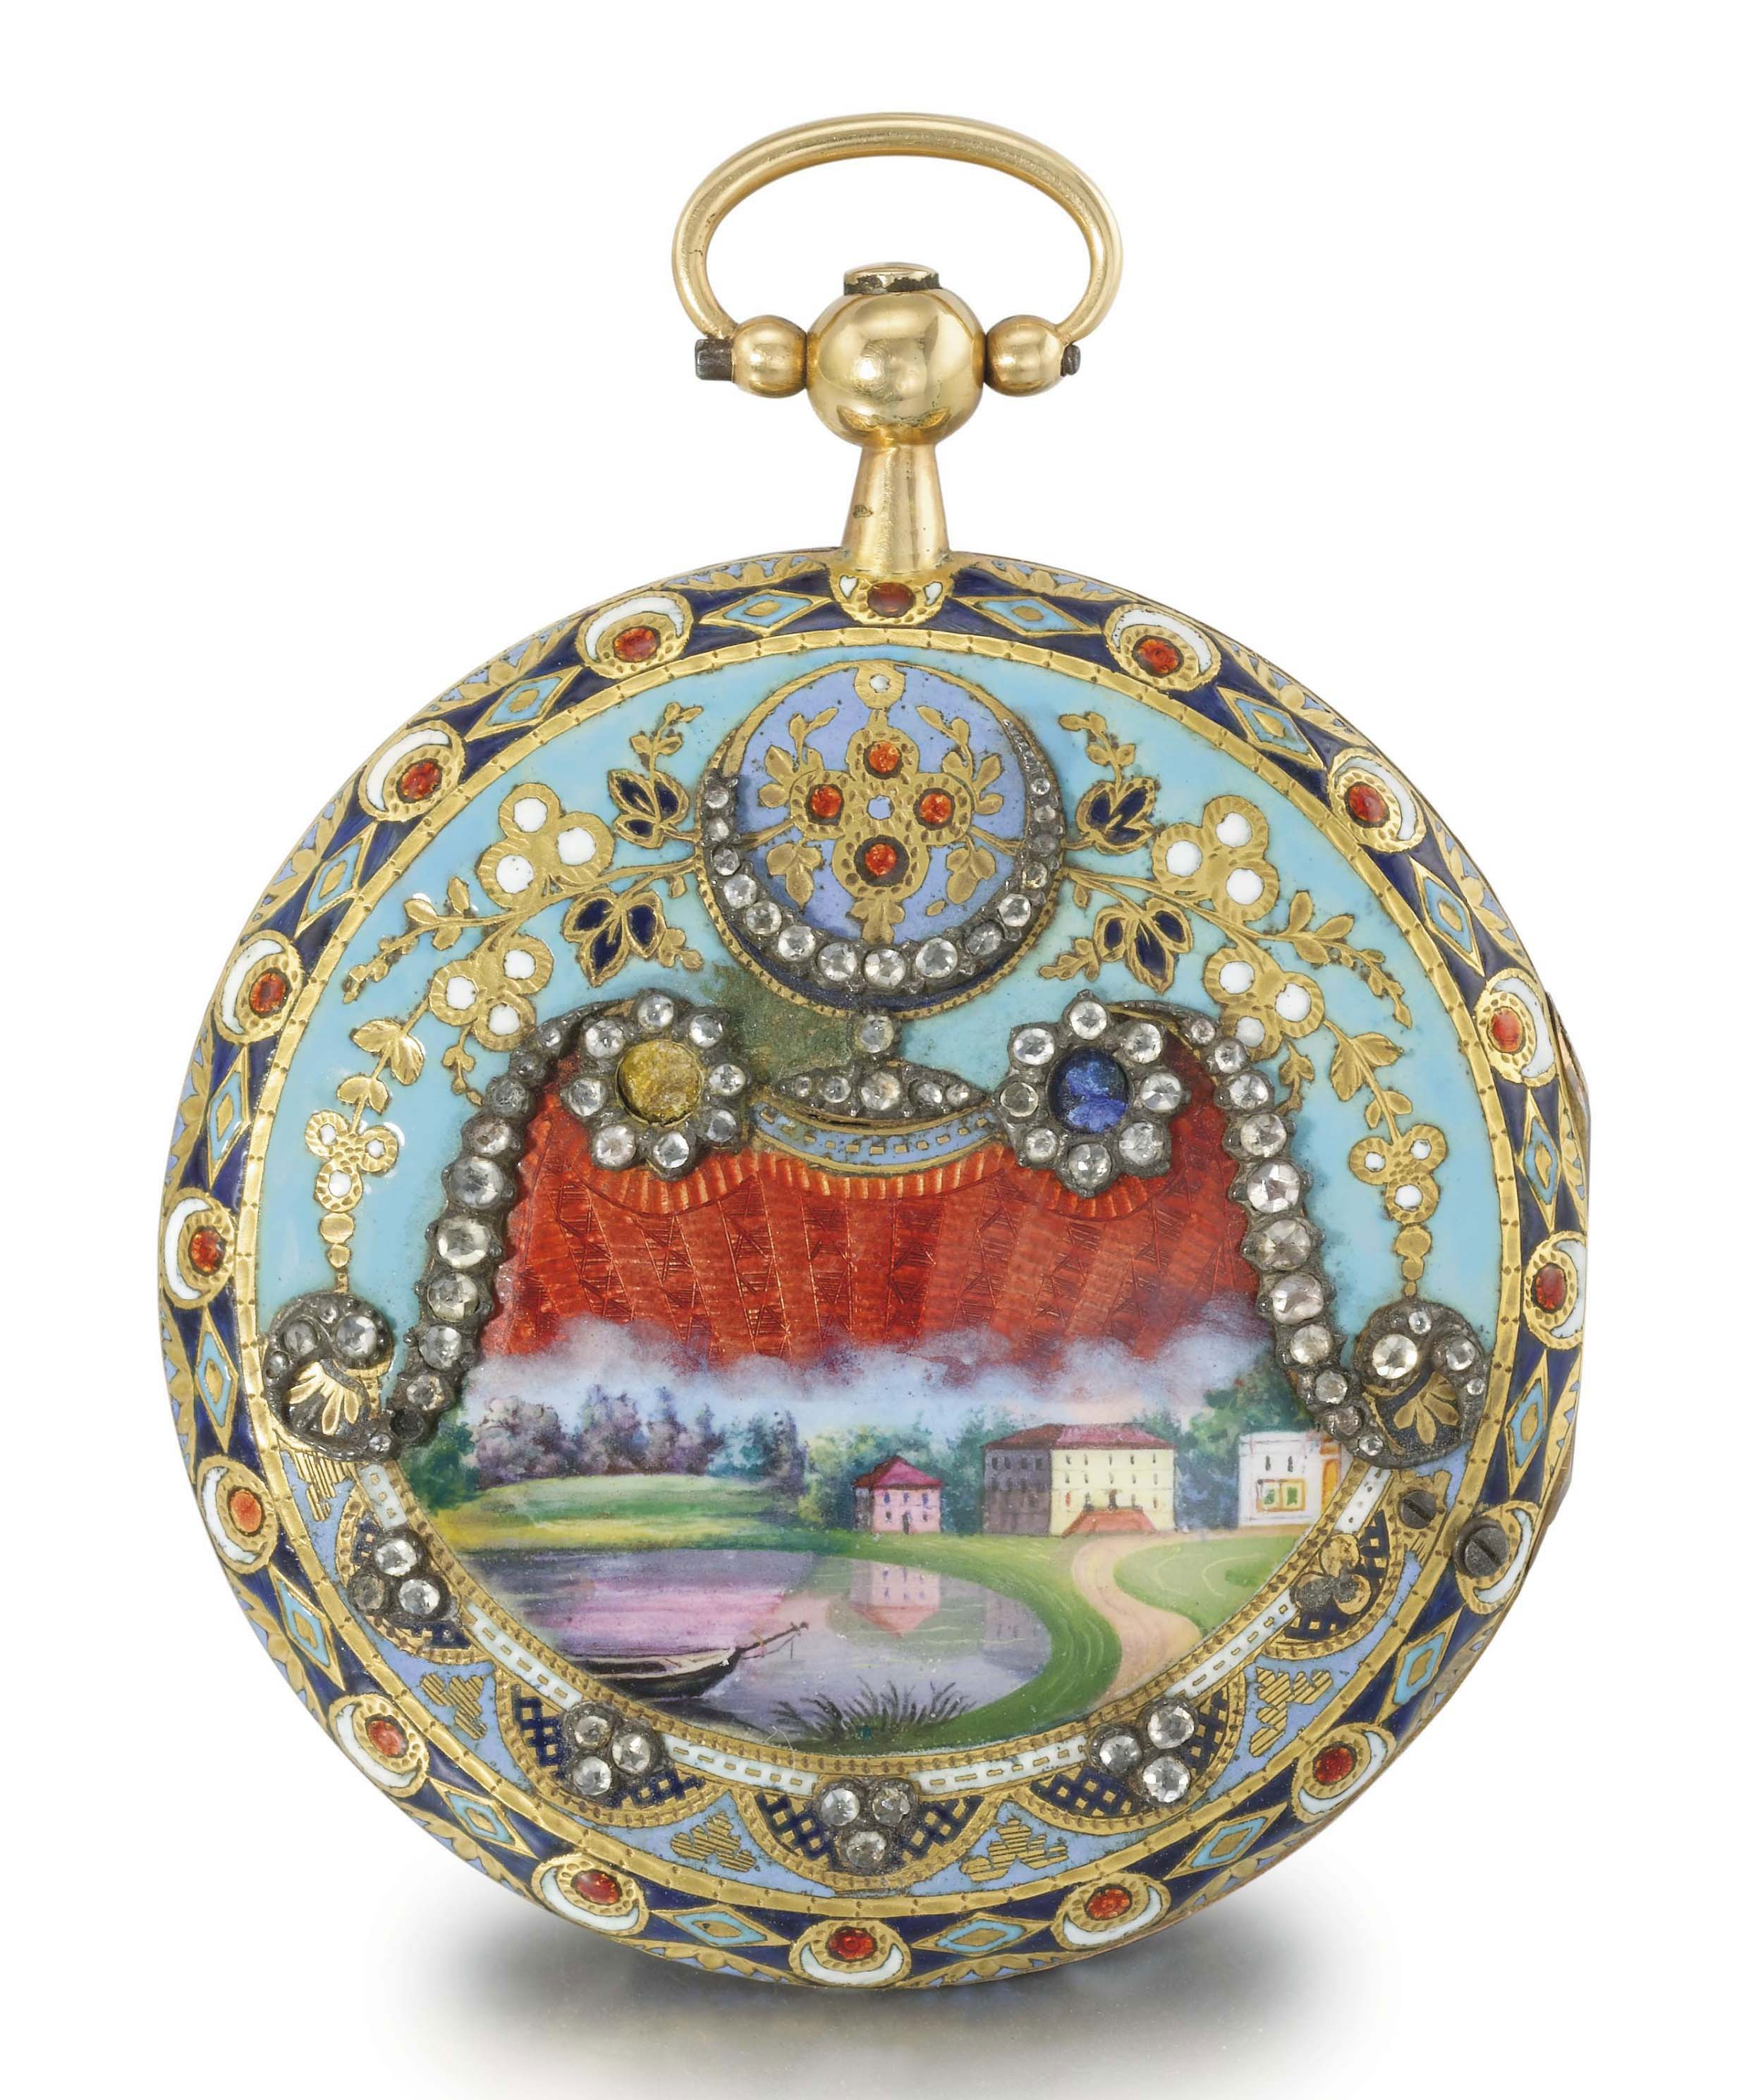 Le Roy. A fine and attractive gilt brass, enamel and diamond-set openface verge watch, made for the Turkish market